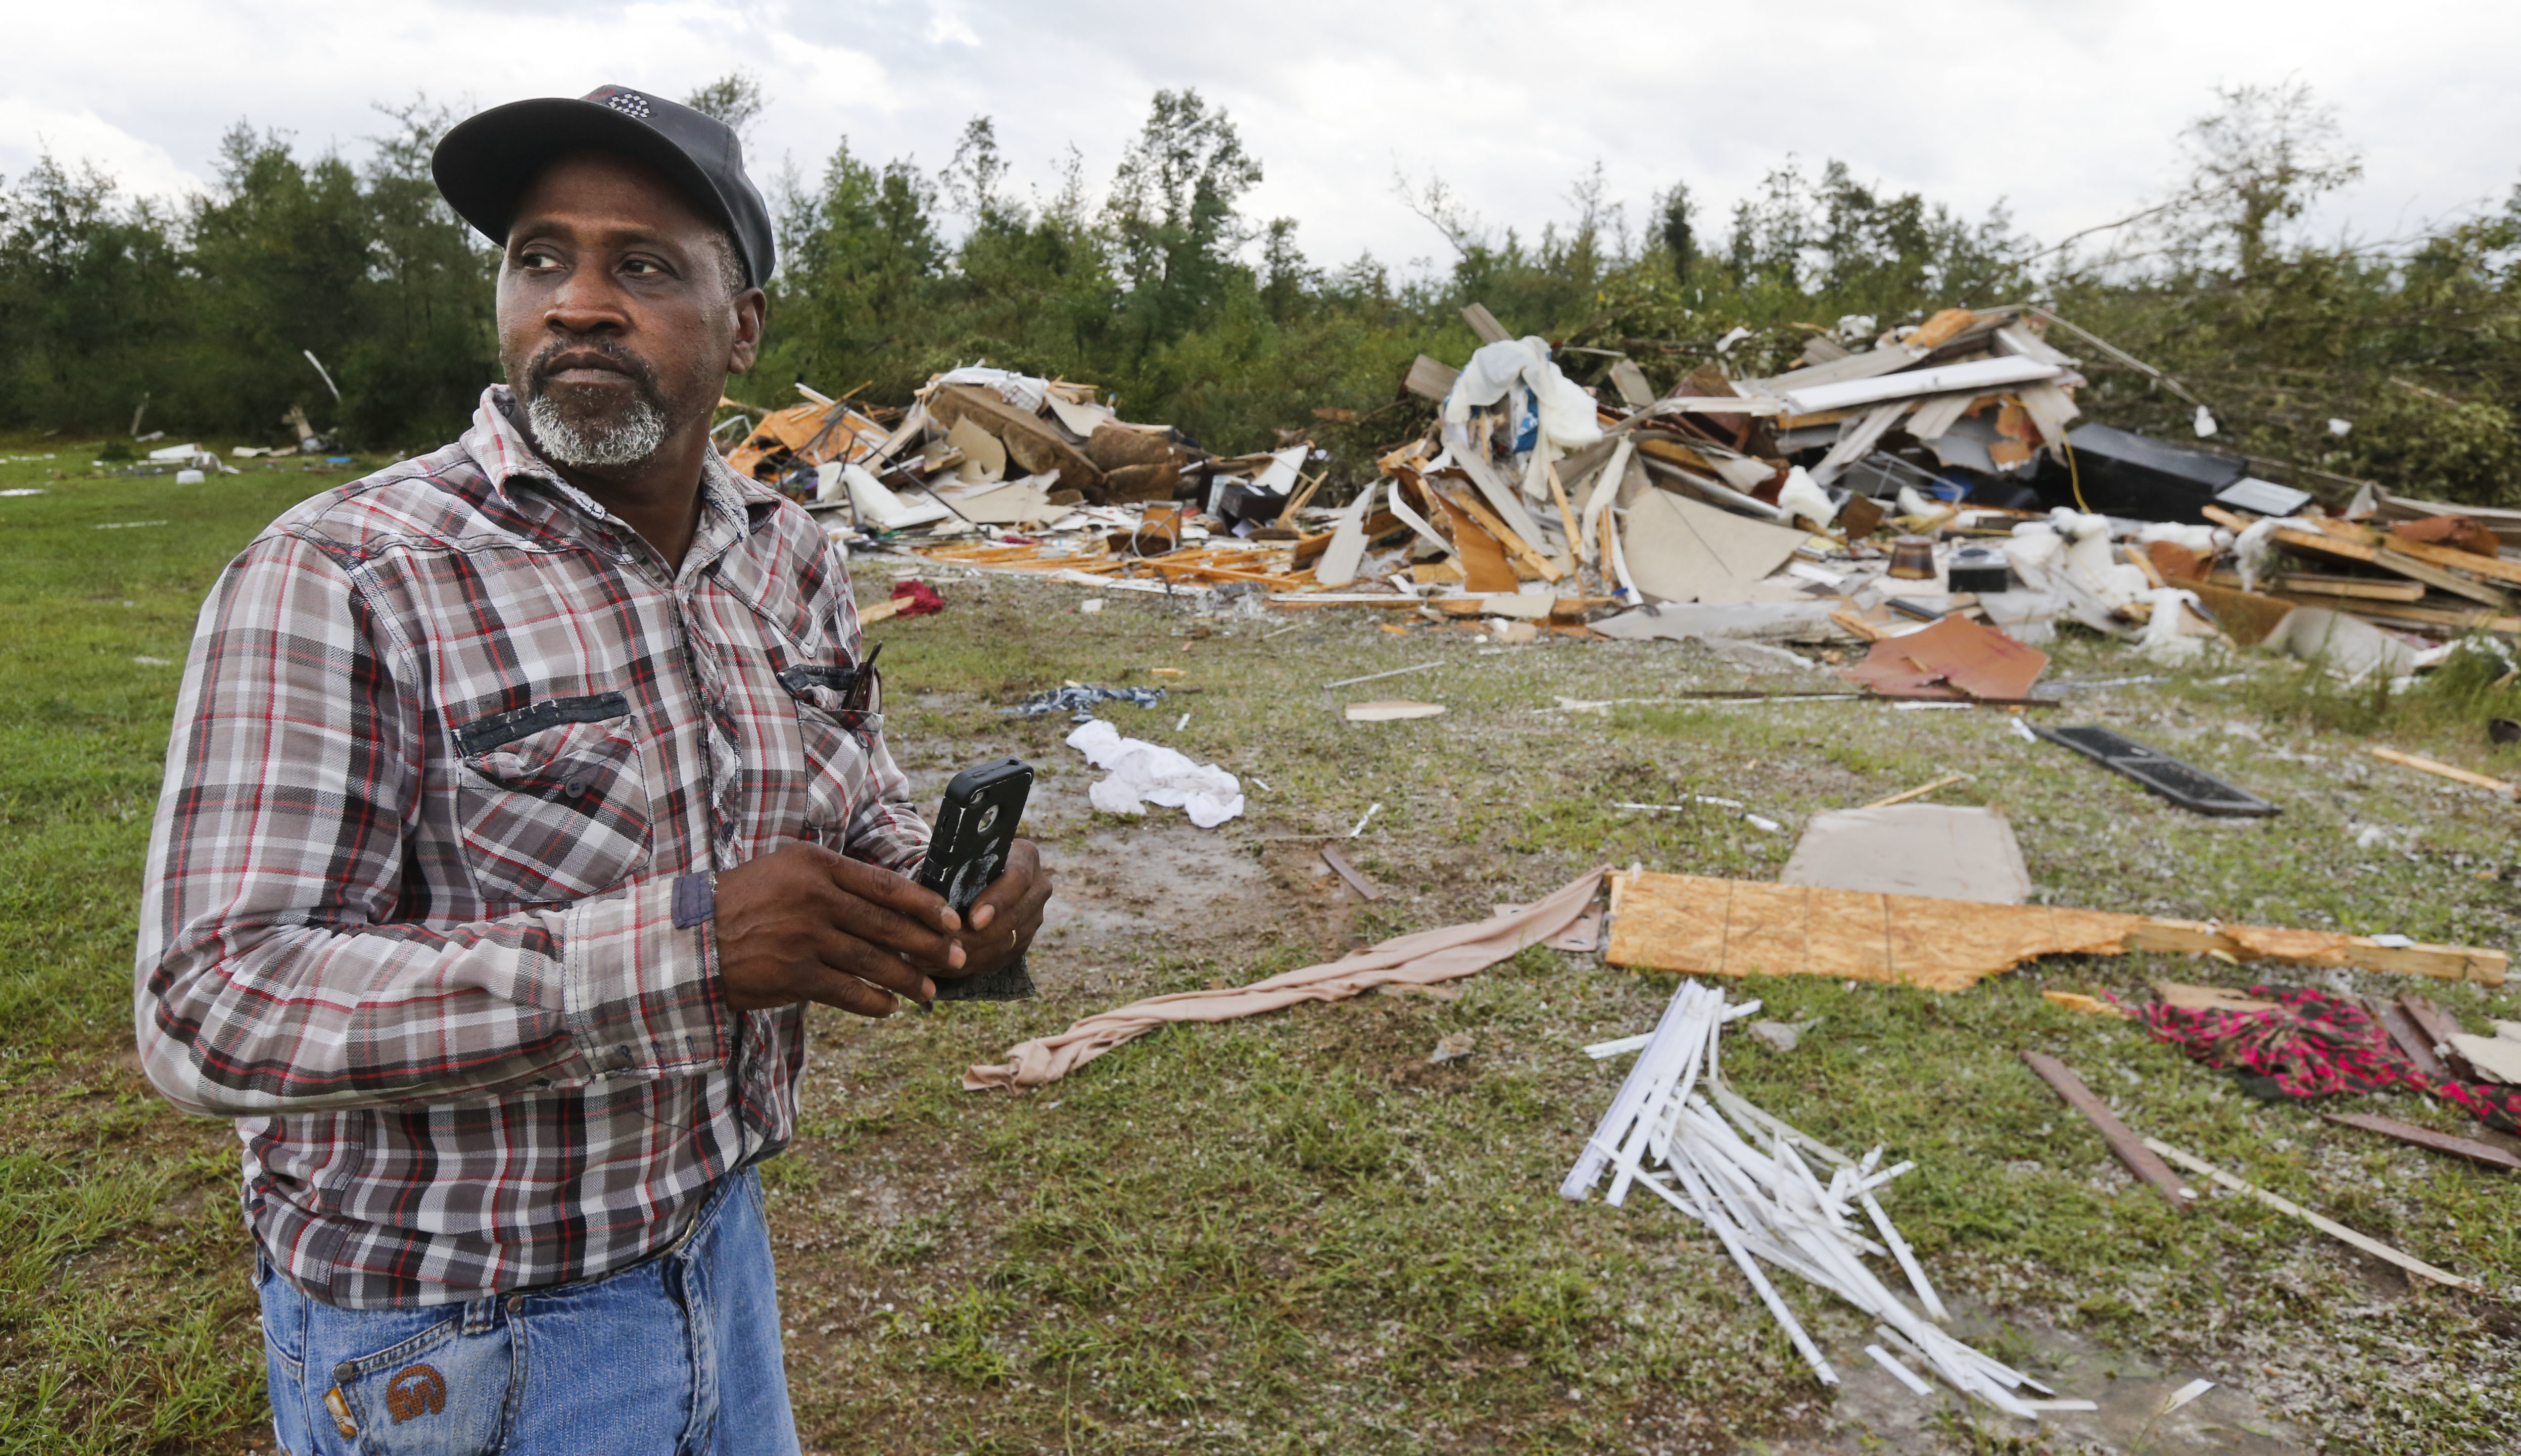 Wayne Doss surveys the damage to his cousin Danny Doss' mobile home, which was completely destroyed by a tornado in Pickens County, Ala., after a tornado struck Thursday, Aug. 31, 2017. The tornado damaged several homes in northwest Alabama as the remnants of Hurricane Harvey came through the state. (Gary Cosby Jr./The Tuscaloosa News via AP)